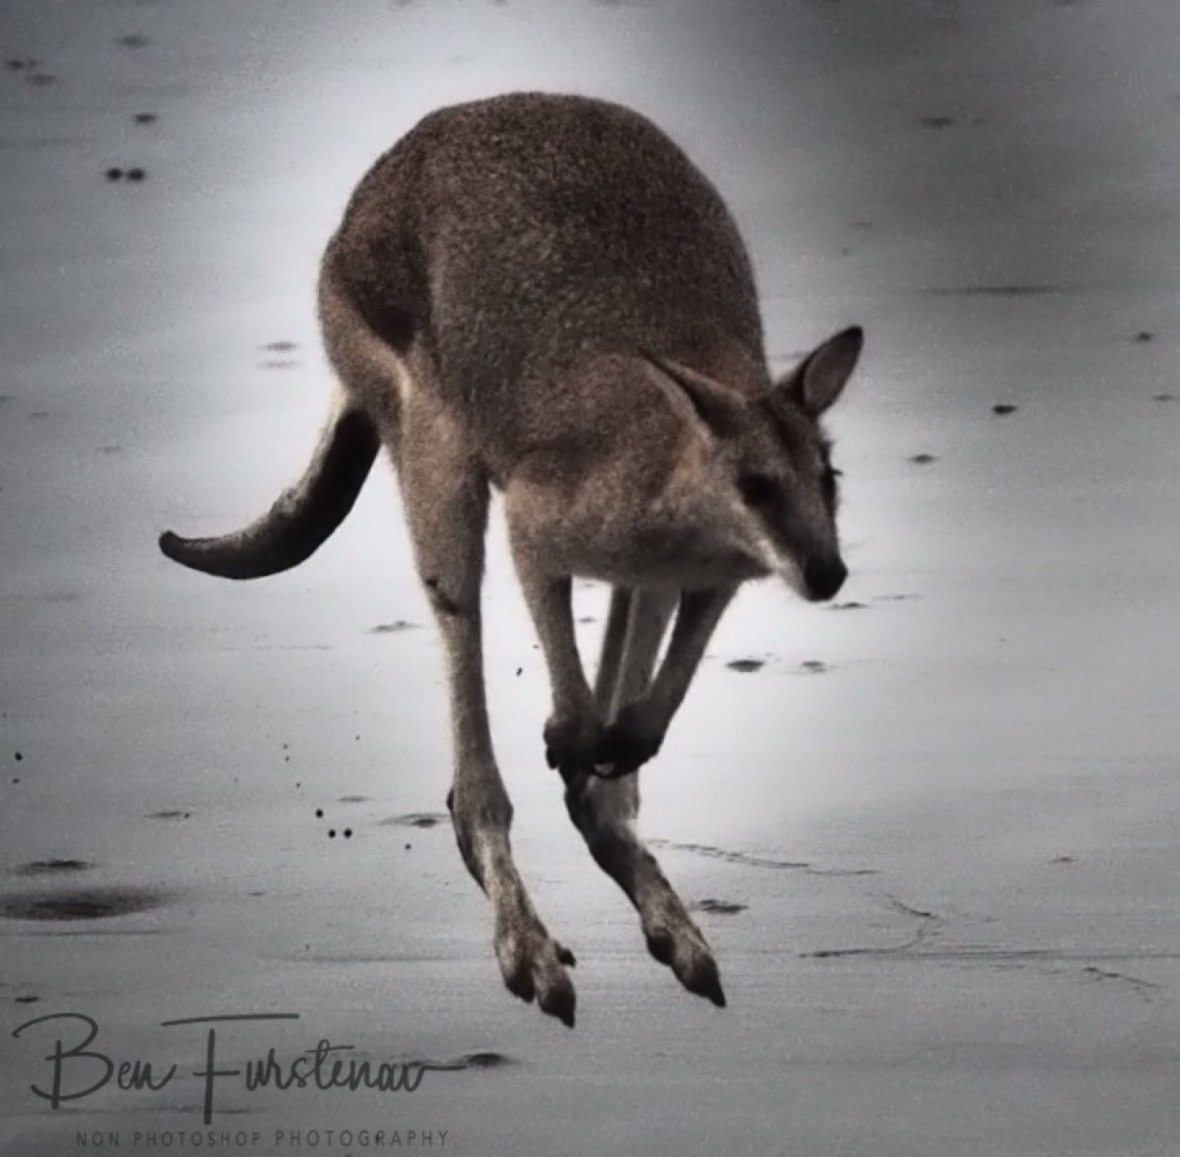 Follow me, Cape Hillsborough, Queensland, Australia